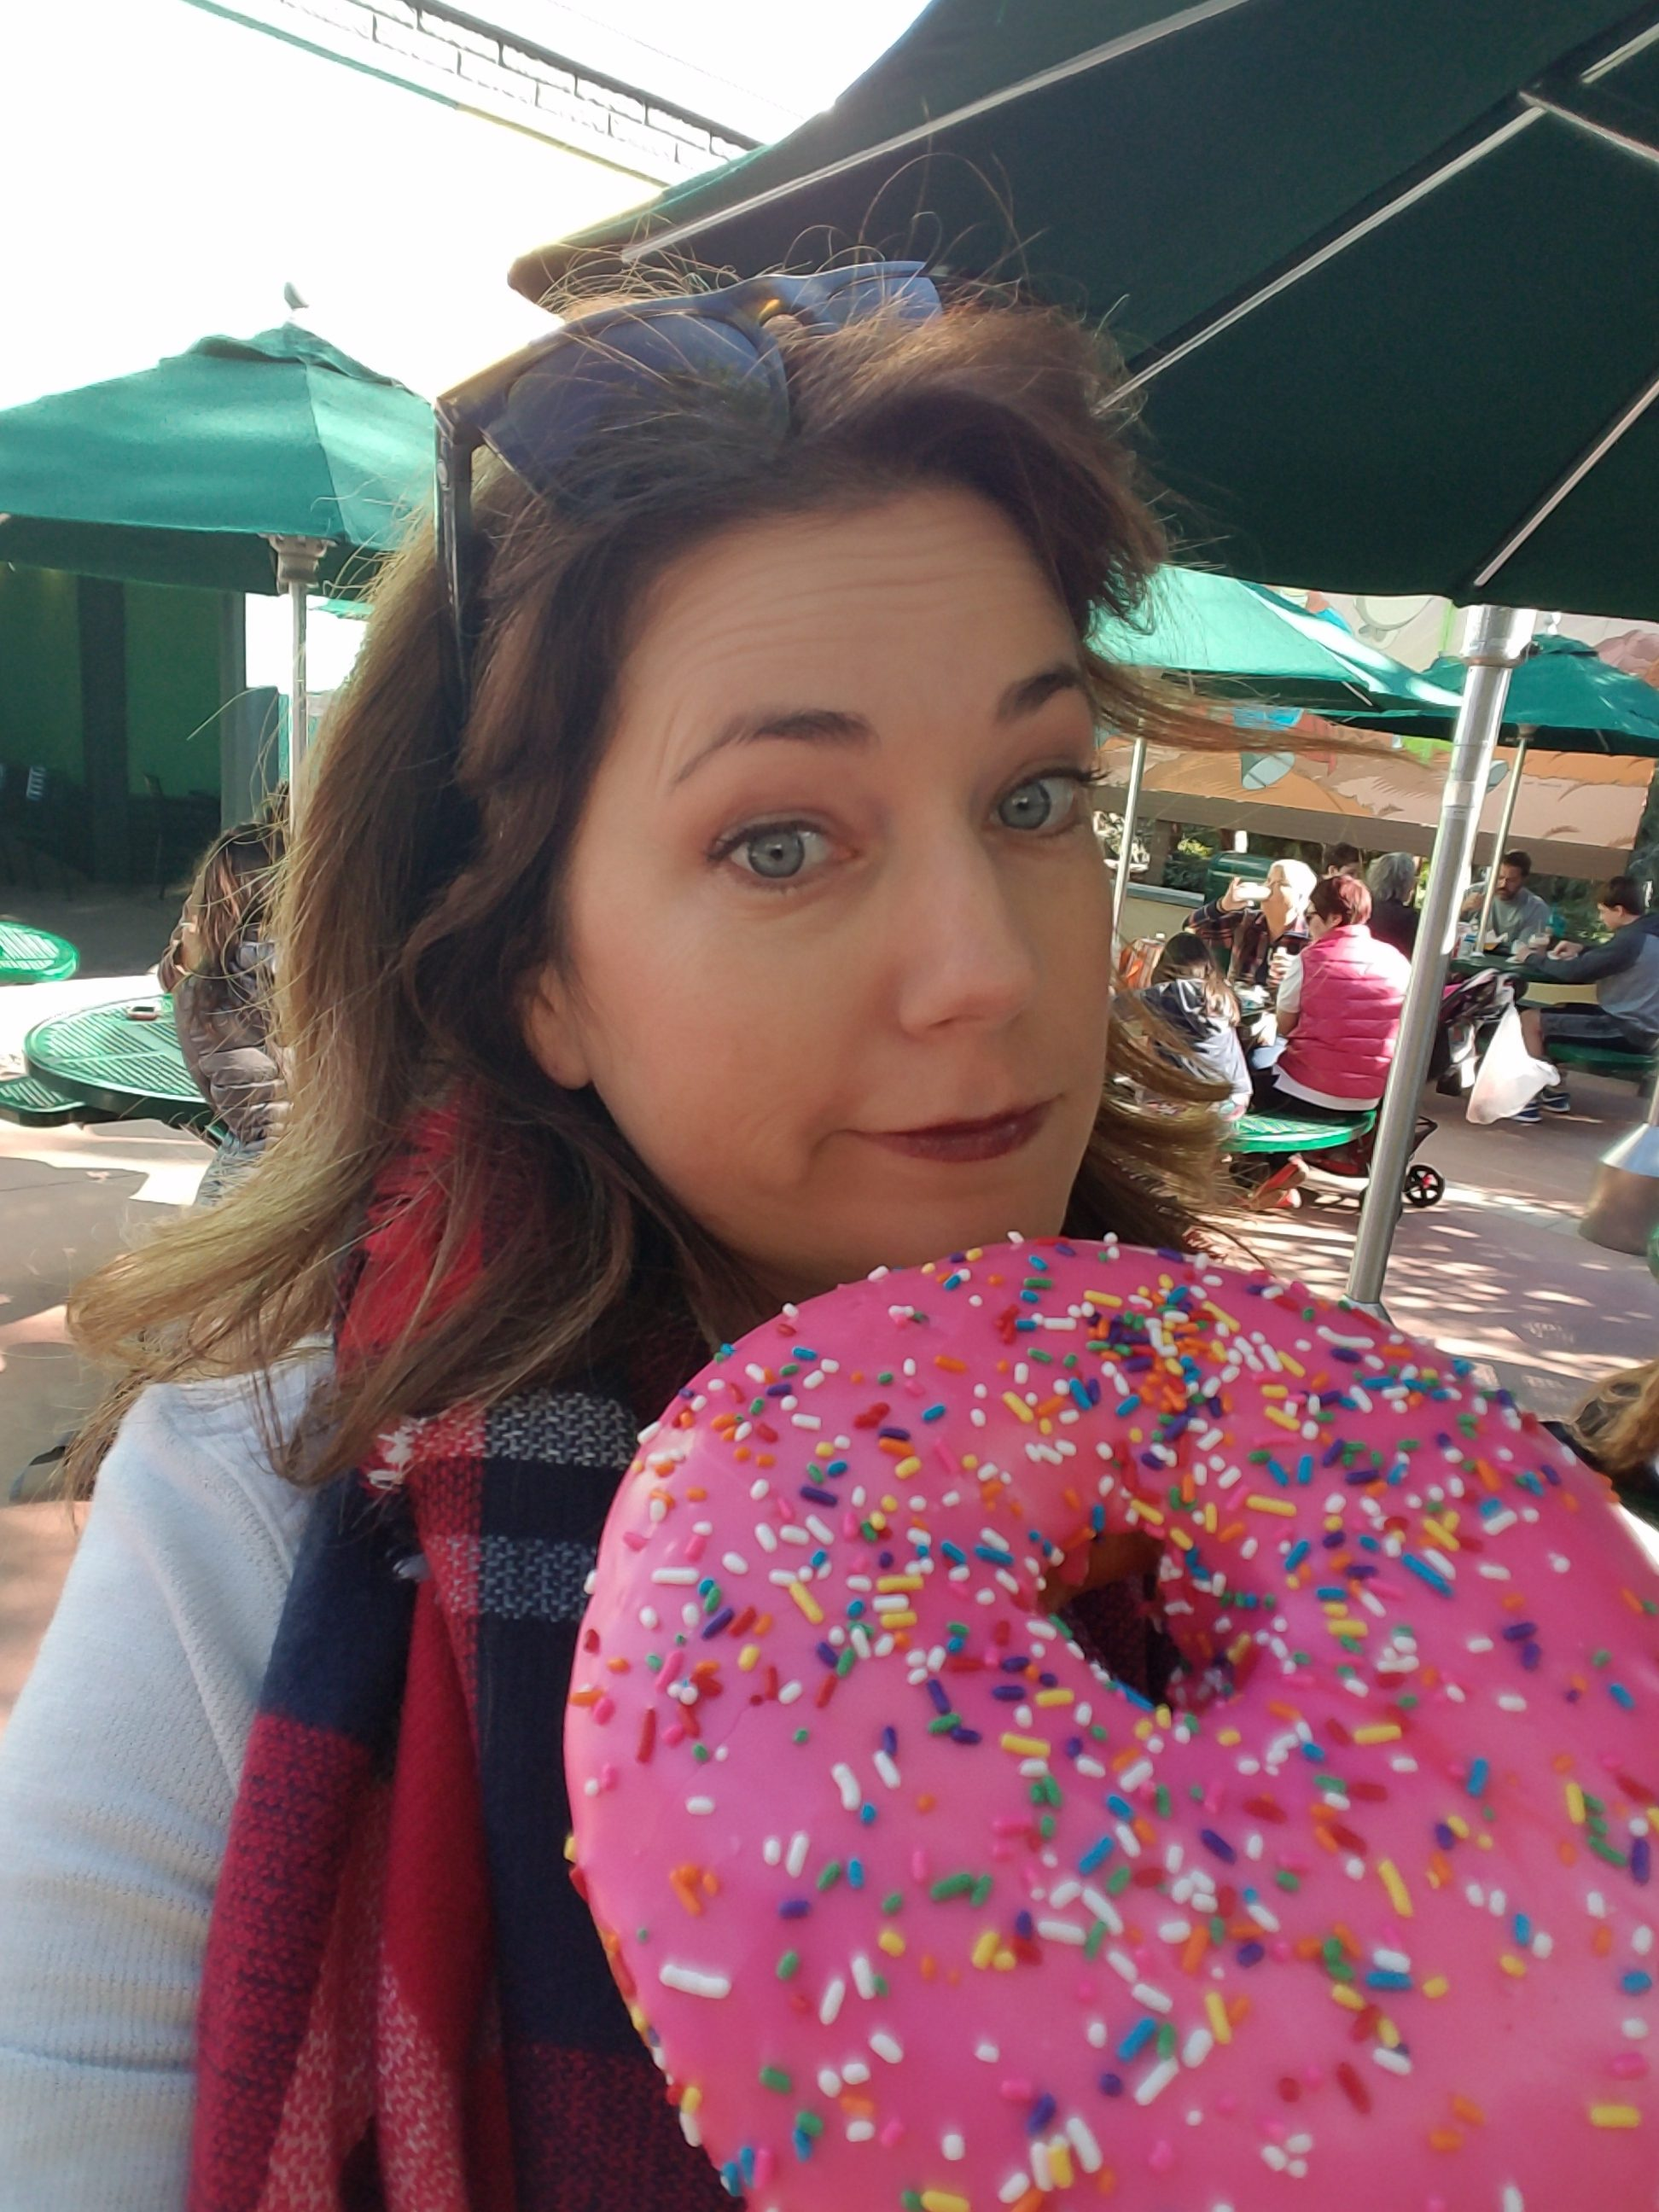 giant sharable donut at universal studios